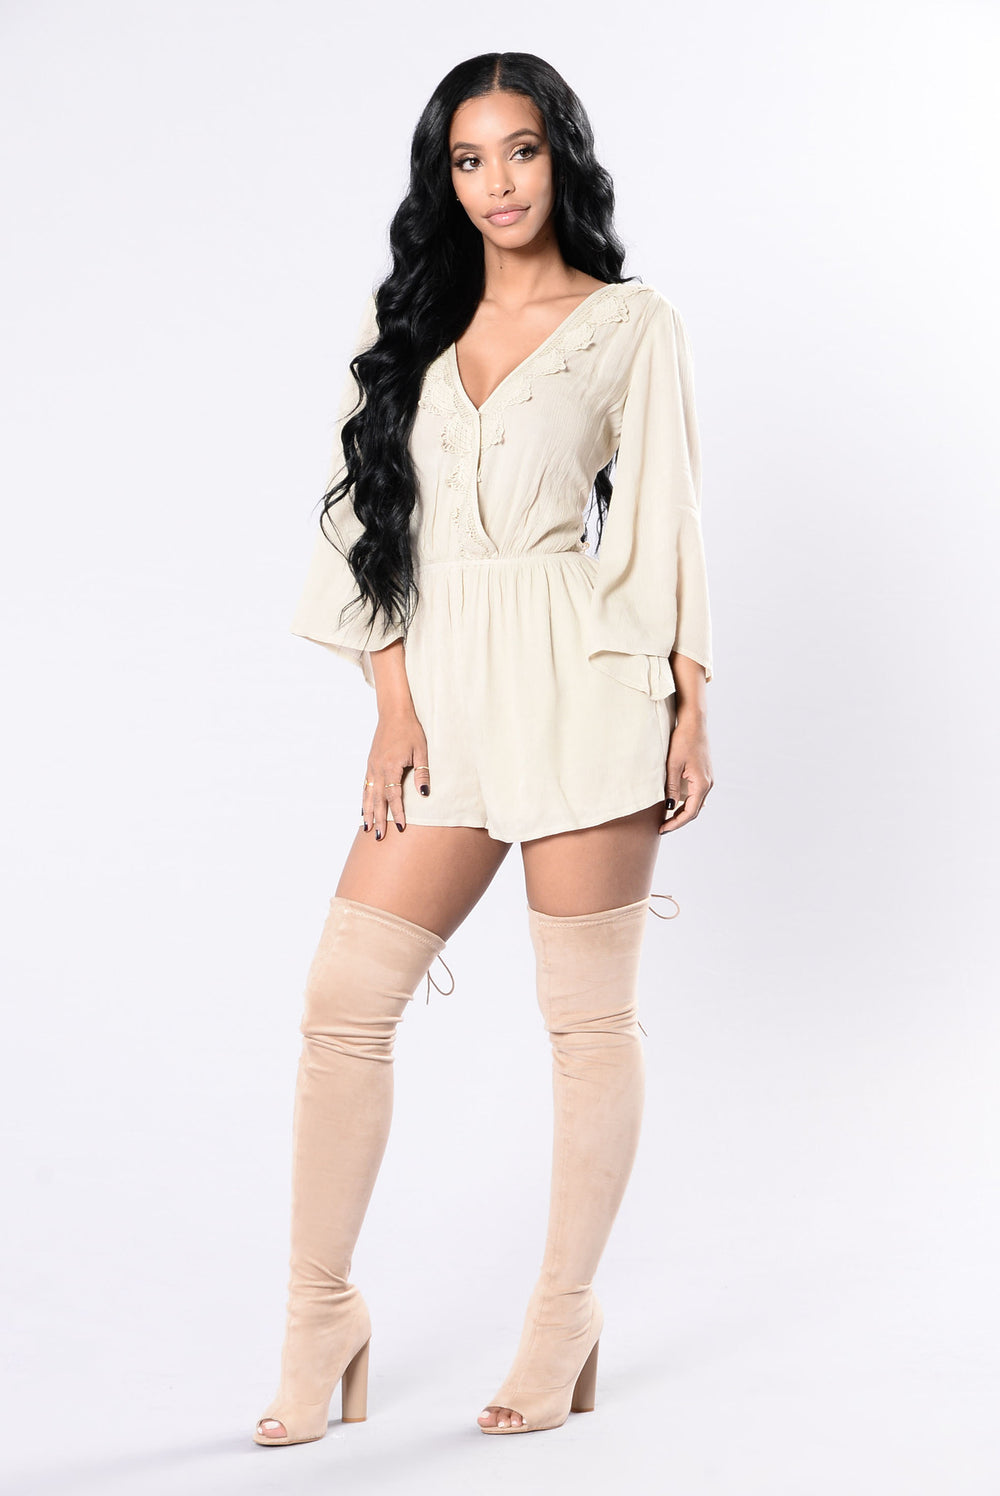 Fighting With Fire Romper - Taupe